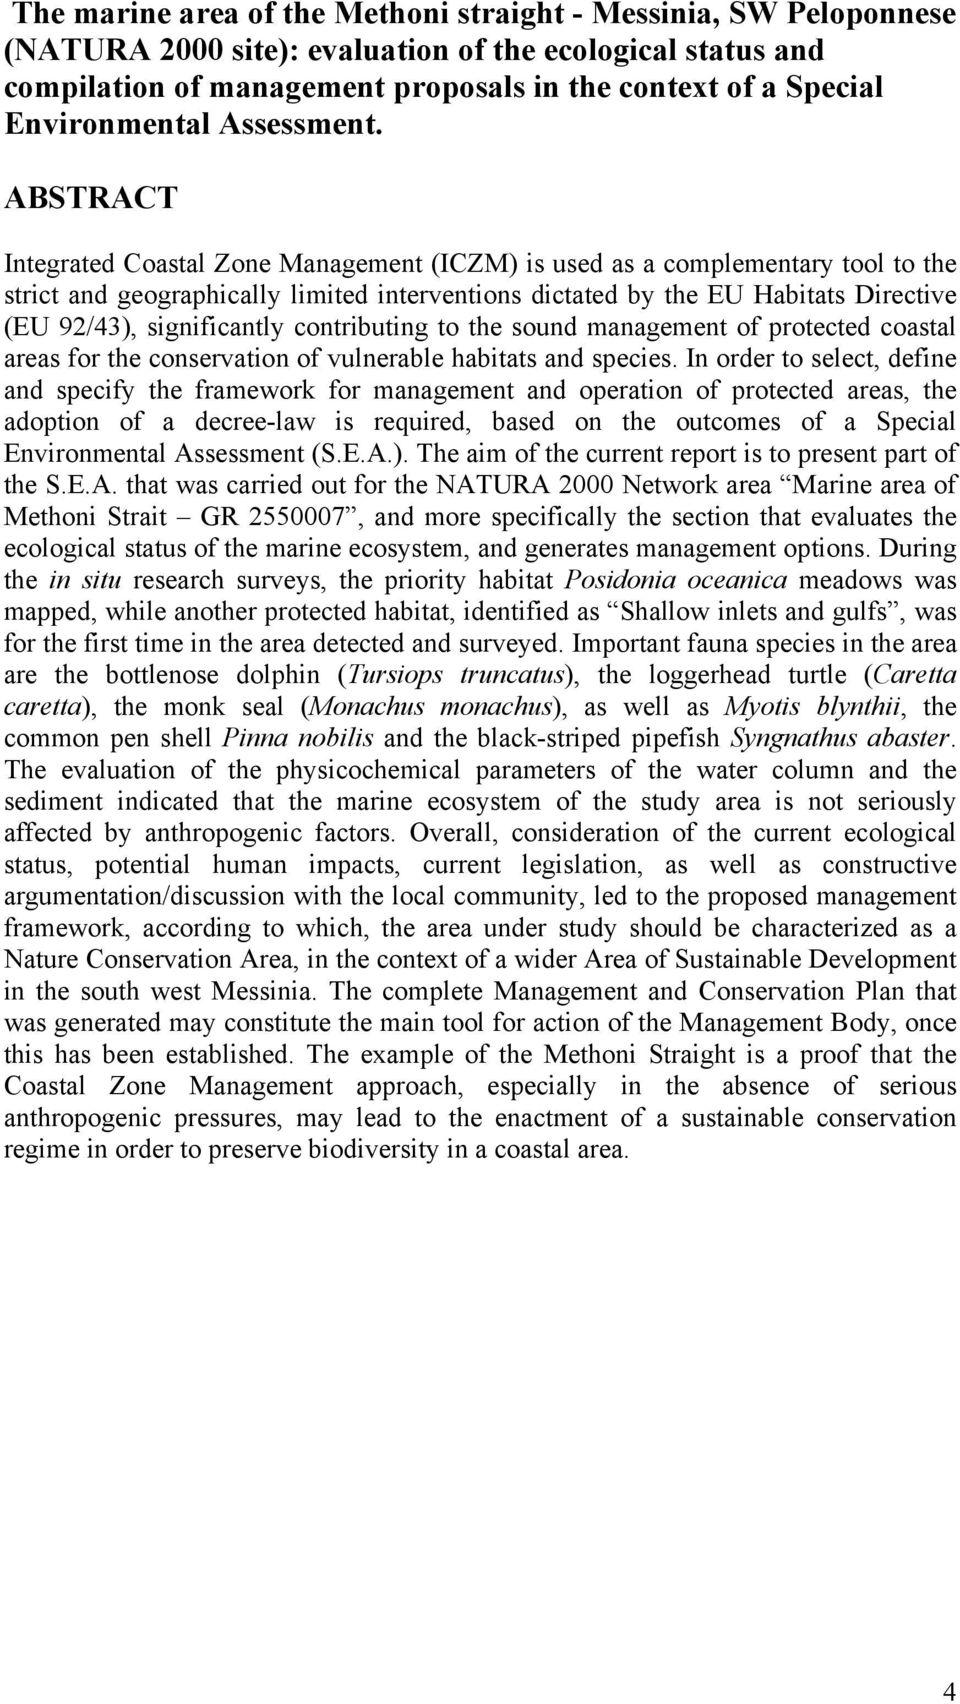 ABSTRACT Integrated Coastal Zone Management (ICZM) is used as a complementary tool to the strict and geographically limited interventions dictated by the EU Habitats Directive (EU 92/43),